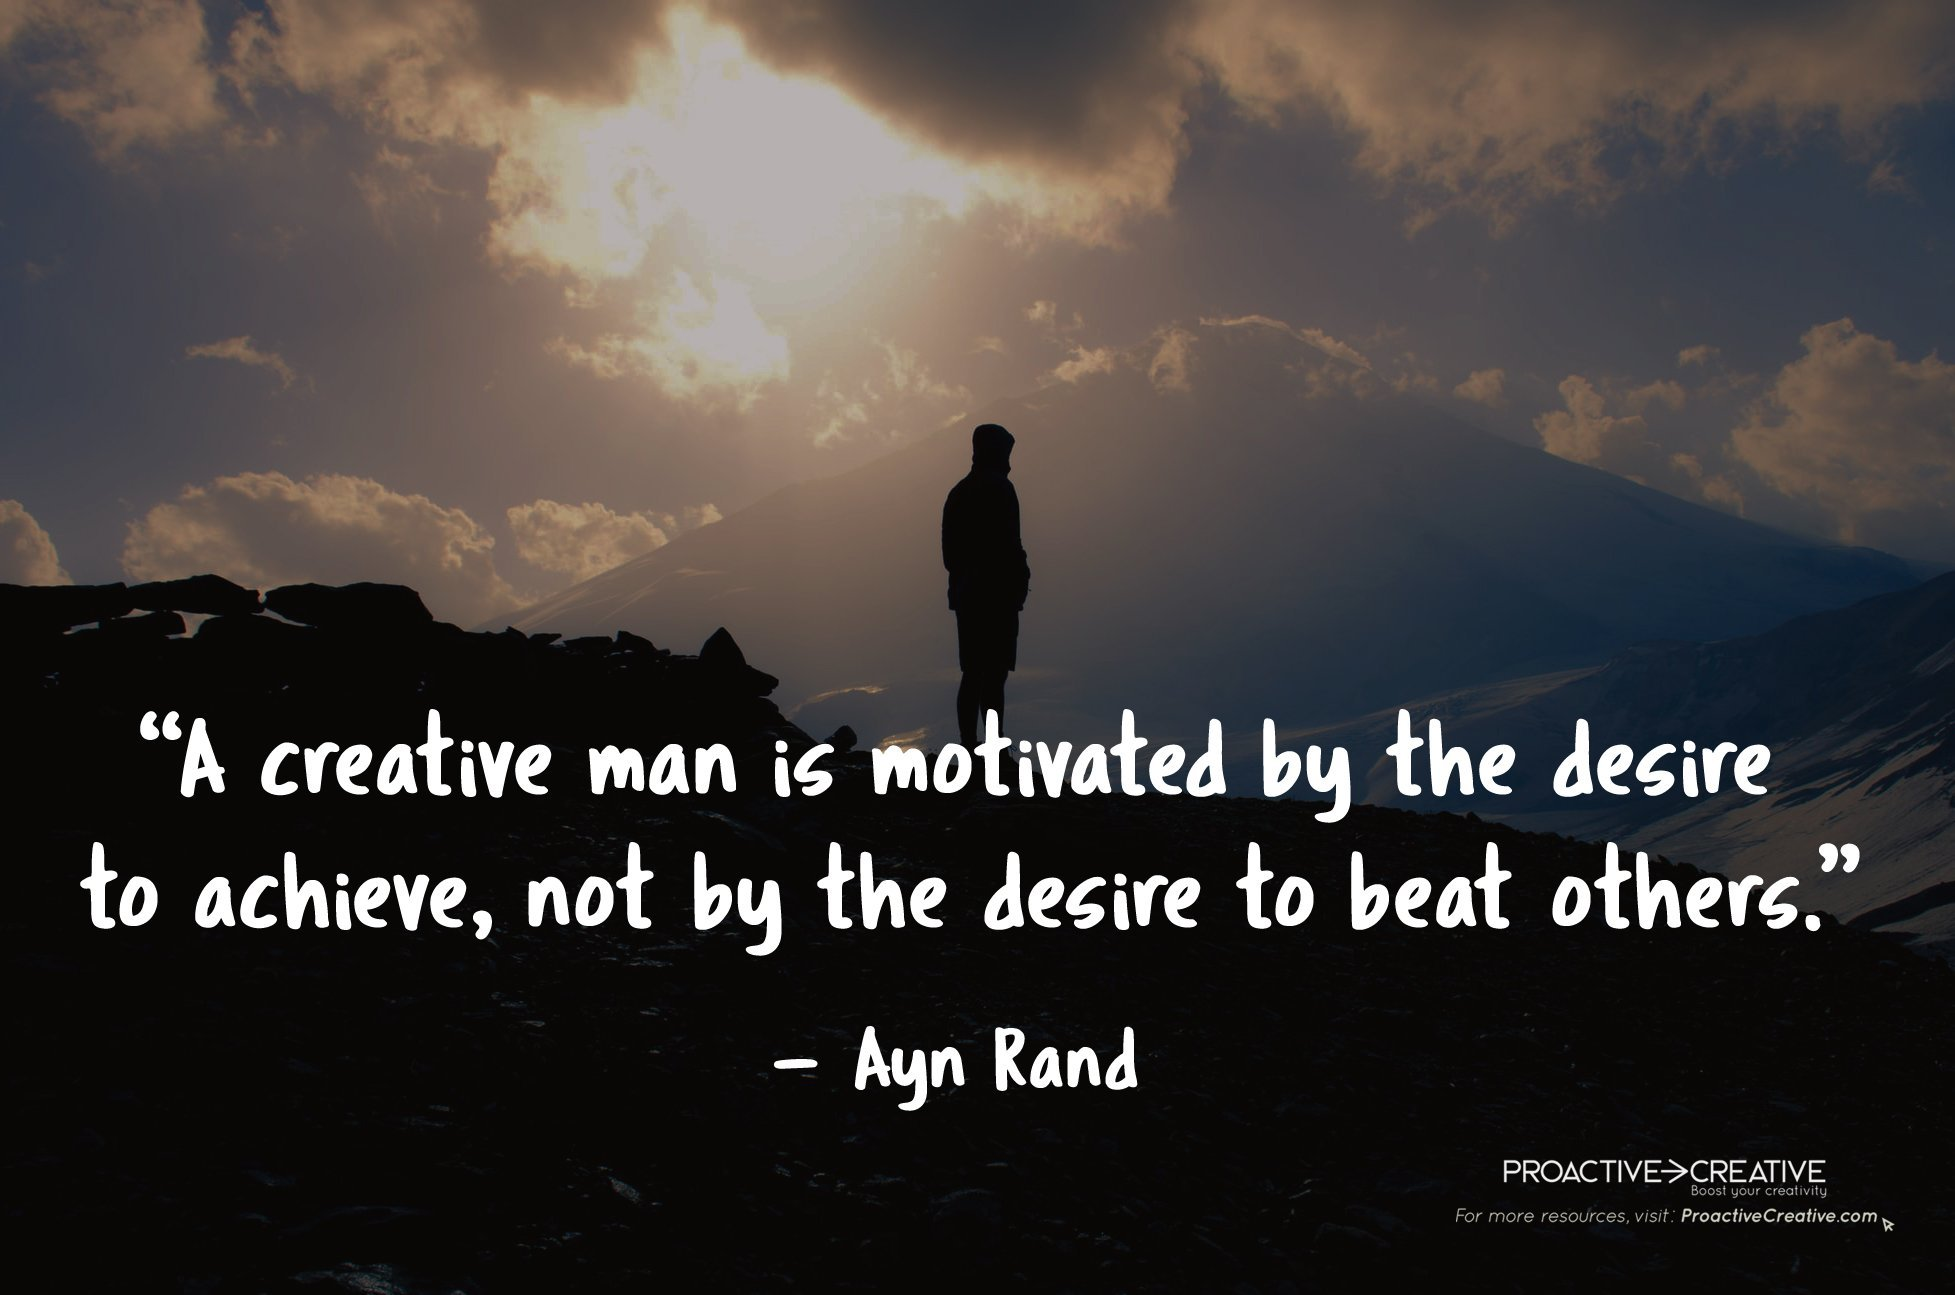 amazing quotes to inspire your creativity